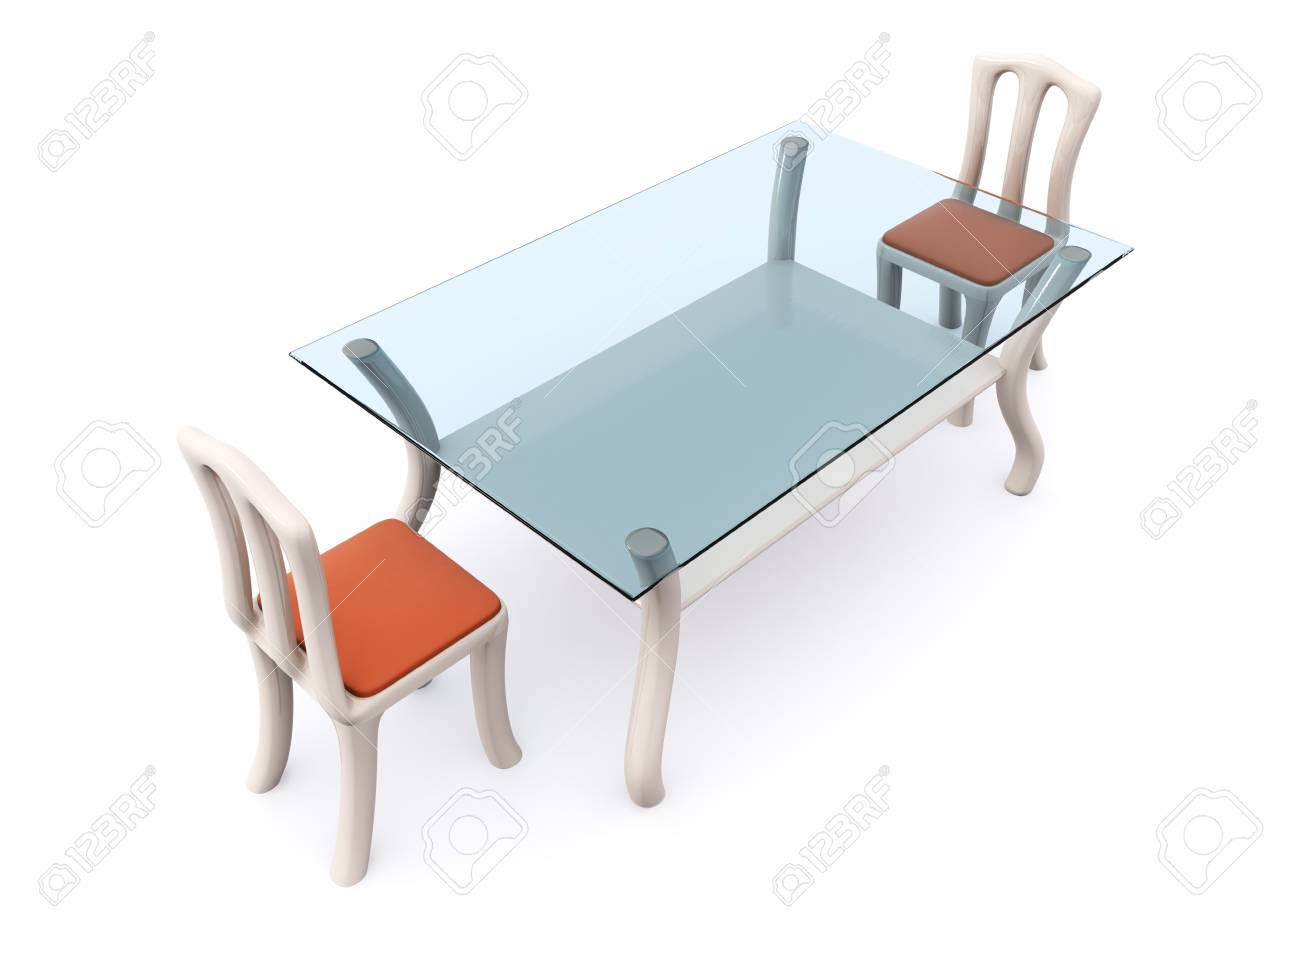 glass dining table with two chairs. 3d Stock Photo - 6406077